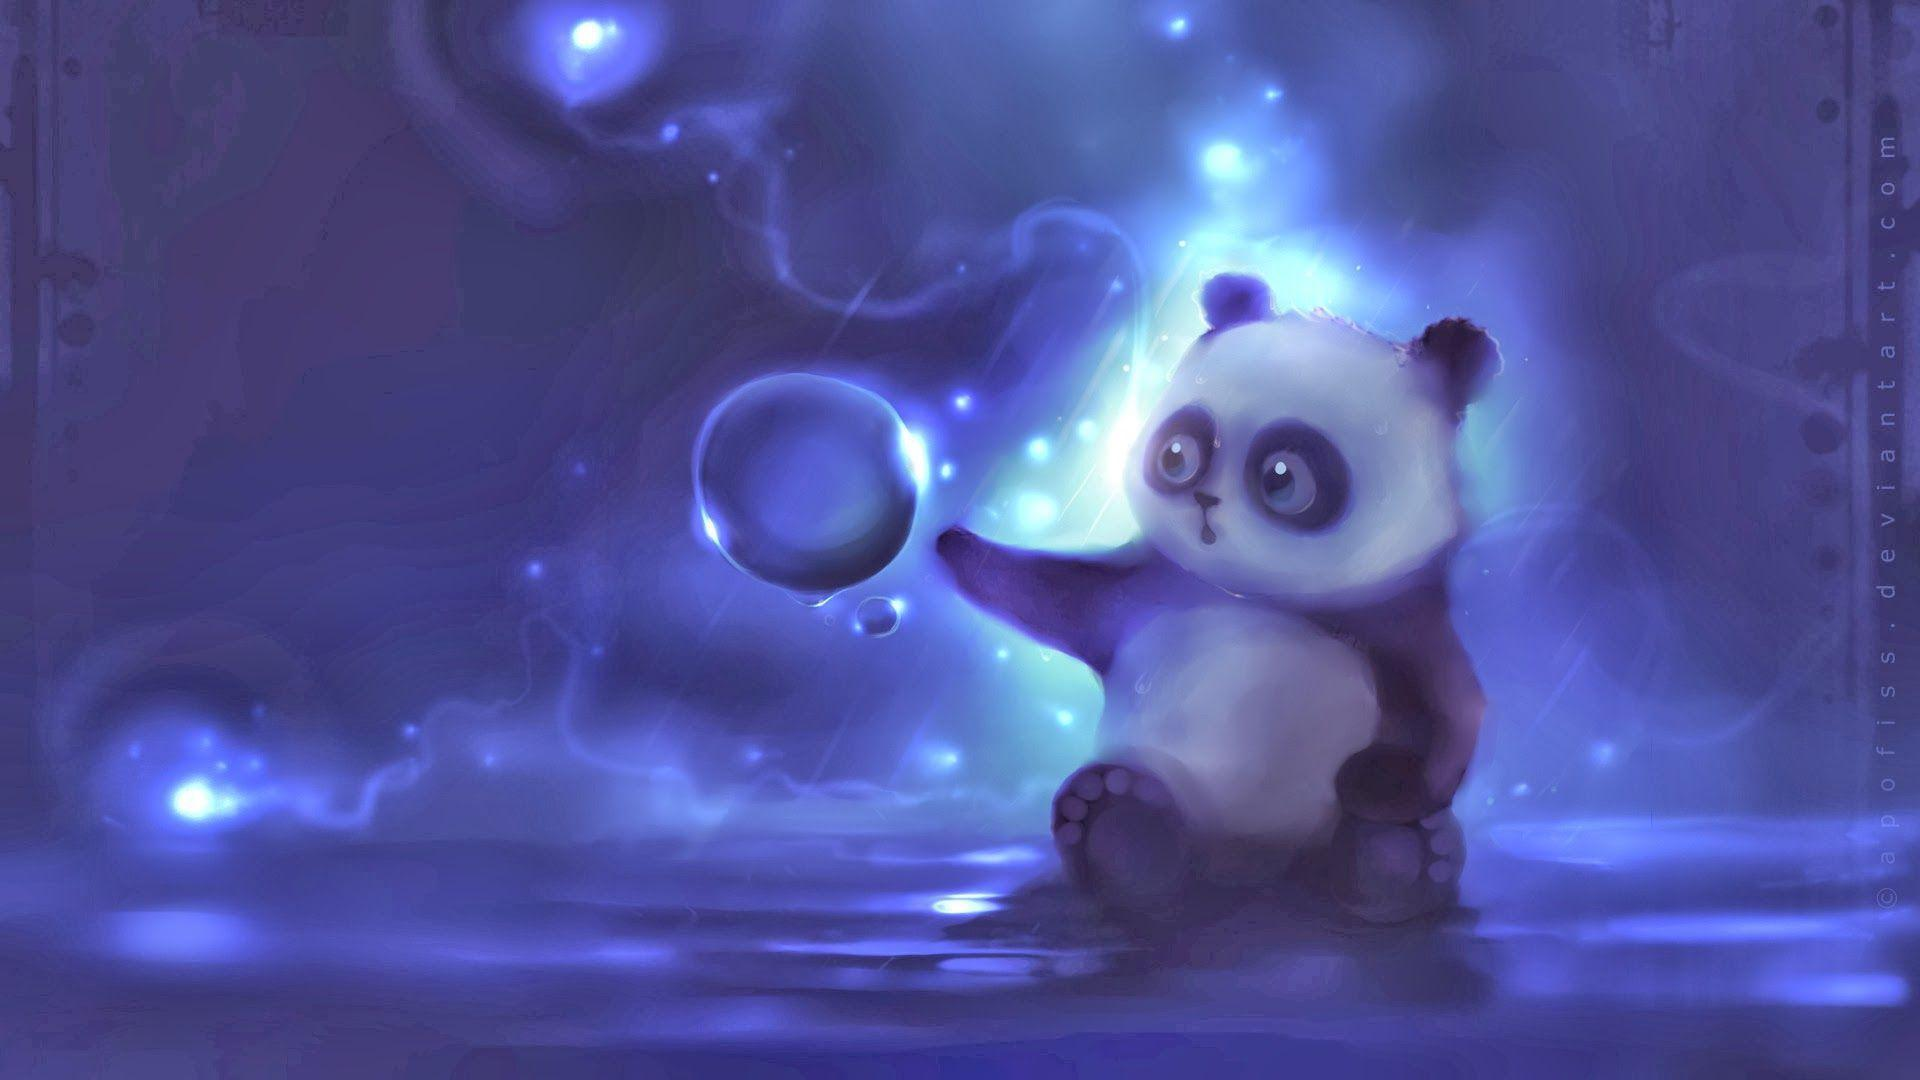 cute panda painting wallpaper - photo #17